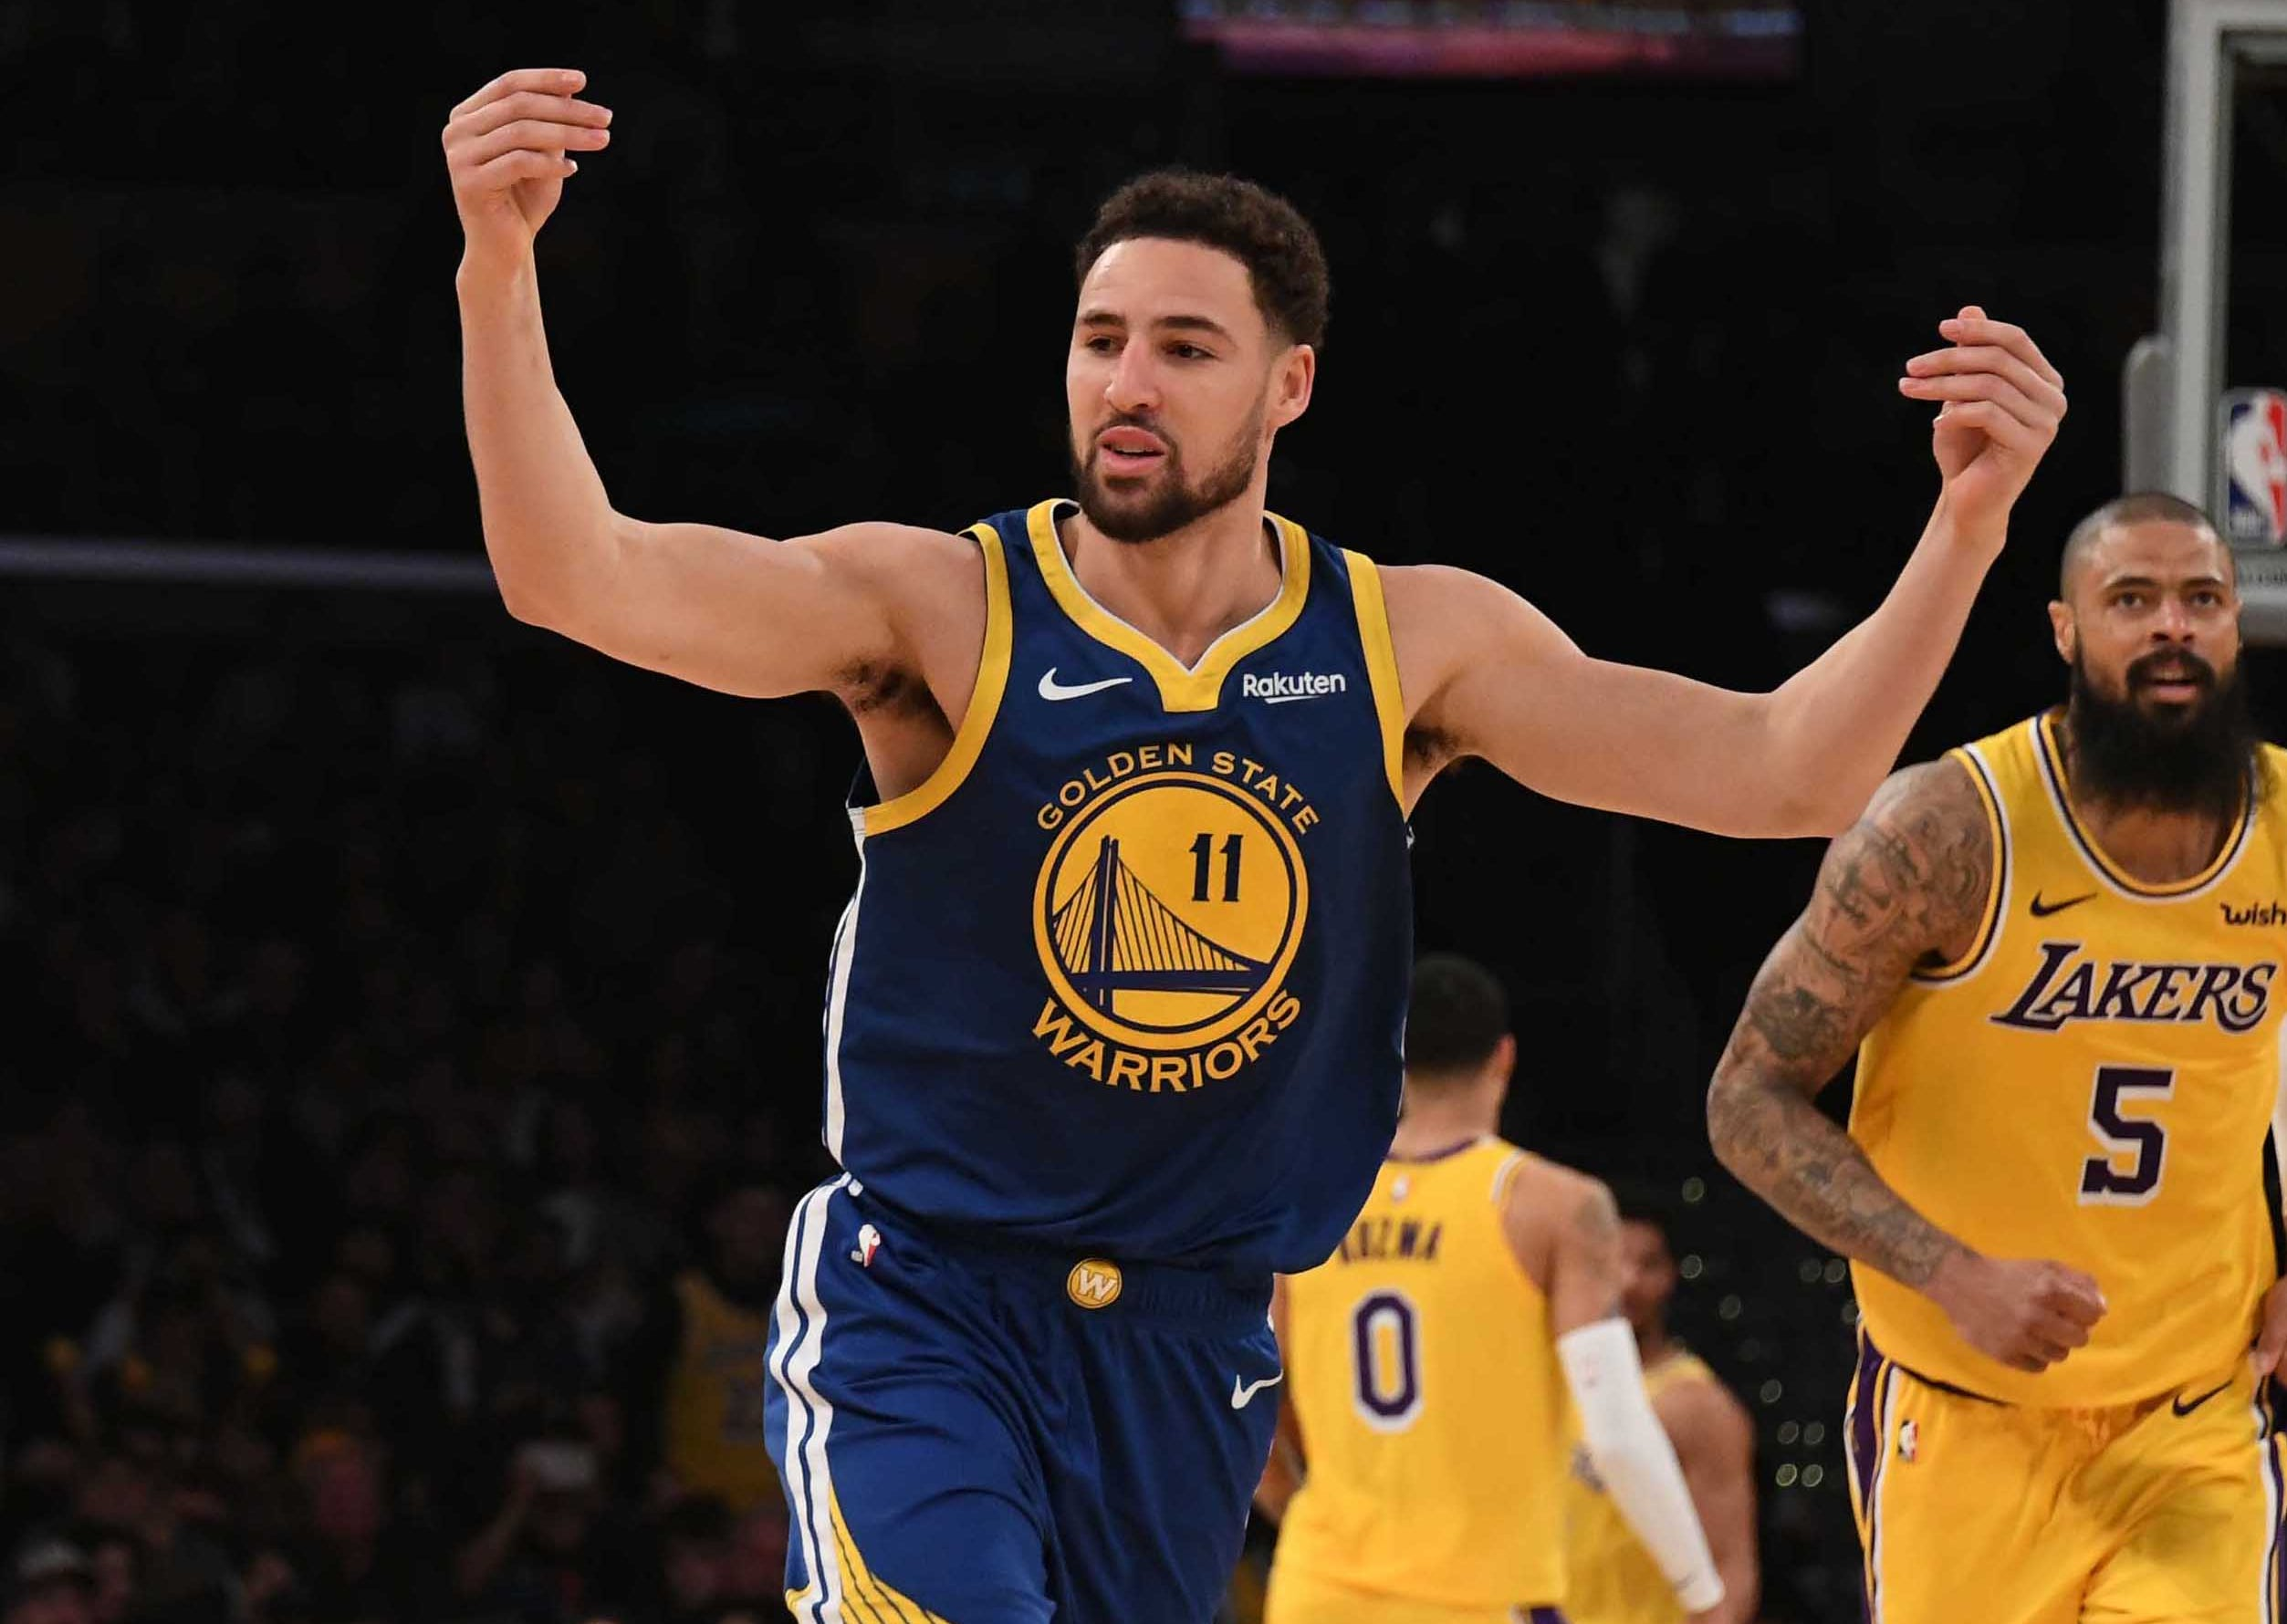 Golden State Warriors guard Klay Thompson (11) celebrates after shooting a 3-pointer against the Los Angeles Lakers.